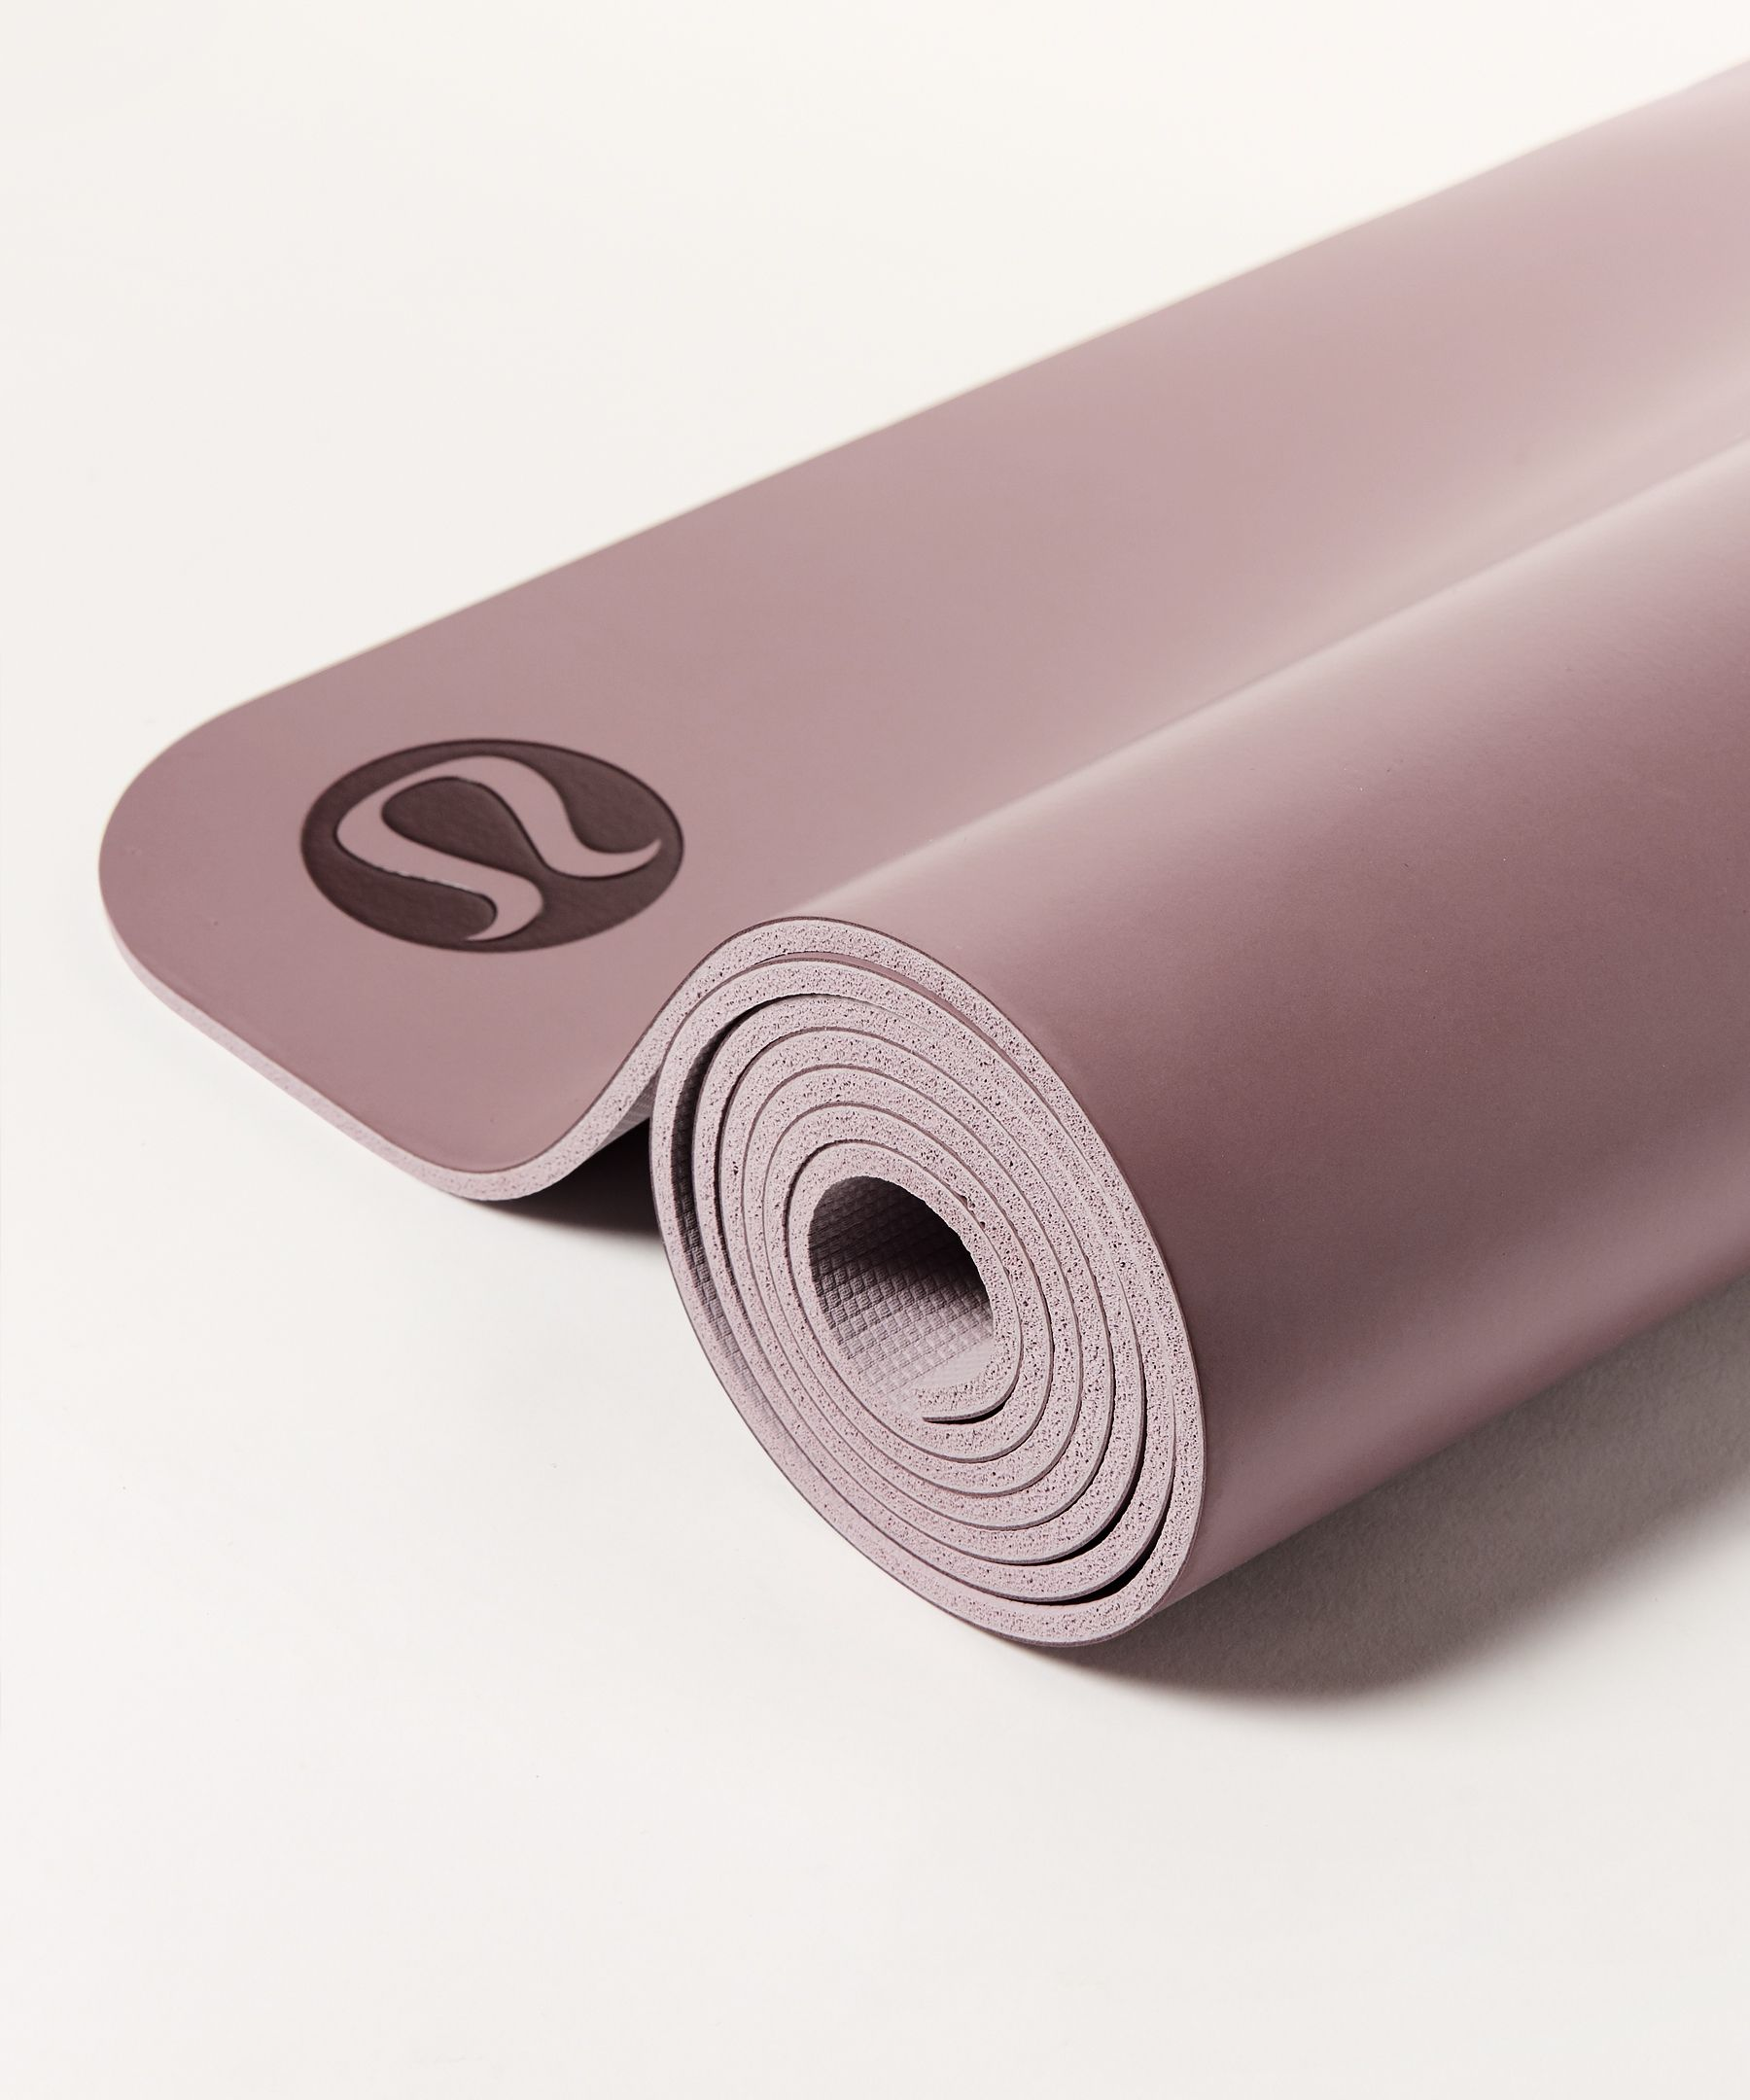 The Reversible Mat 5mm We designed this mat with a